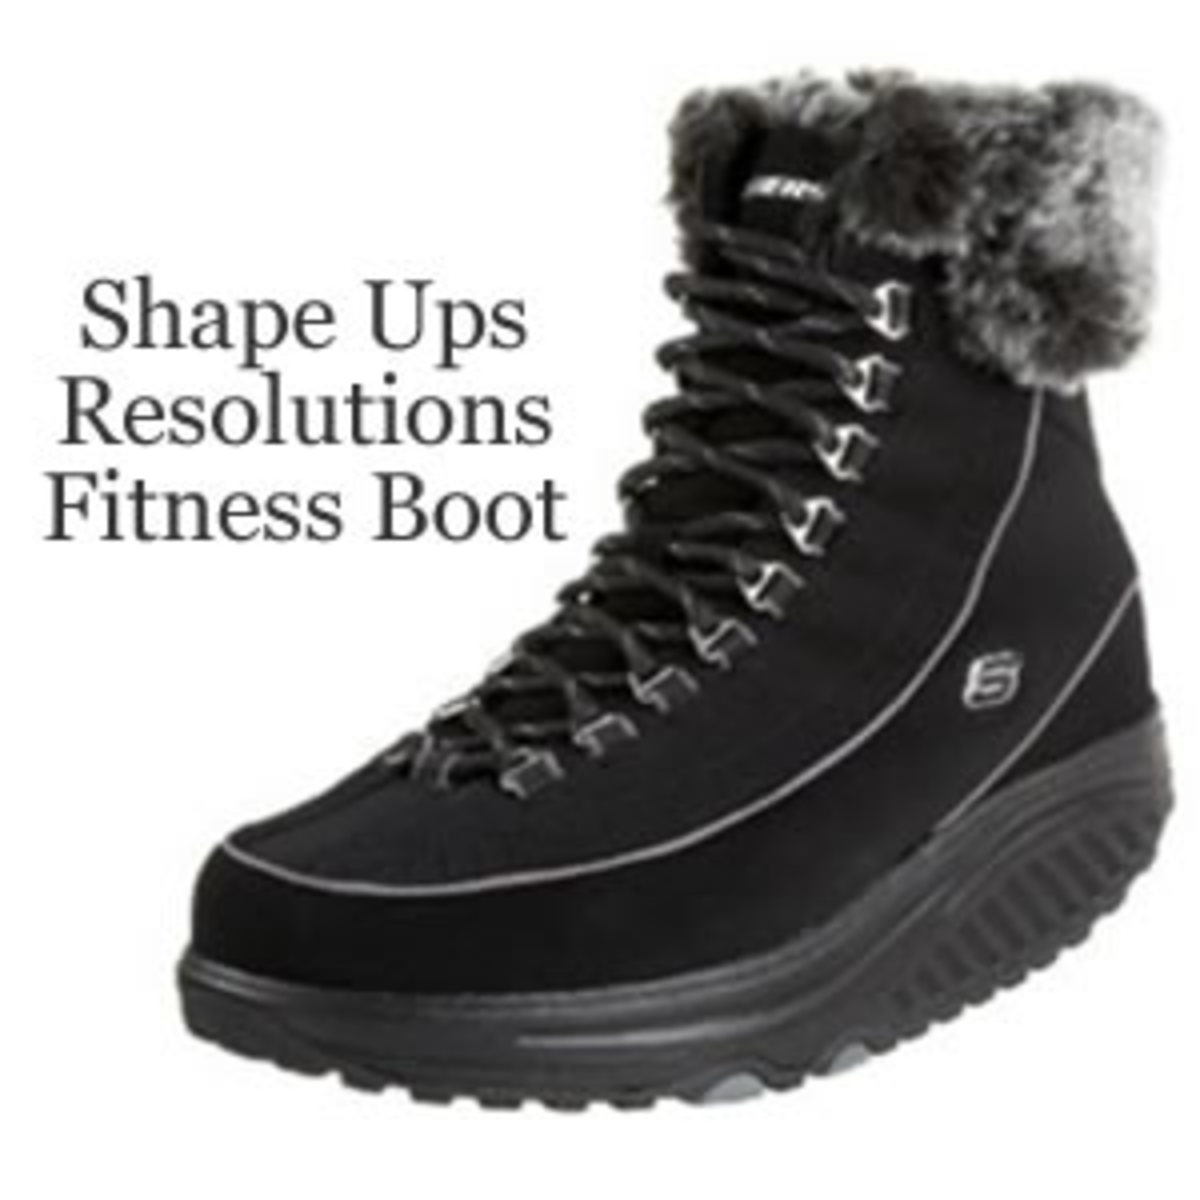 Fitness boots